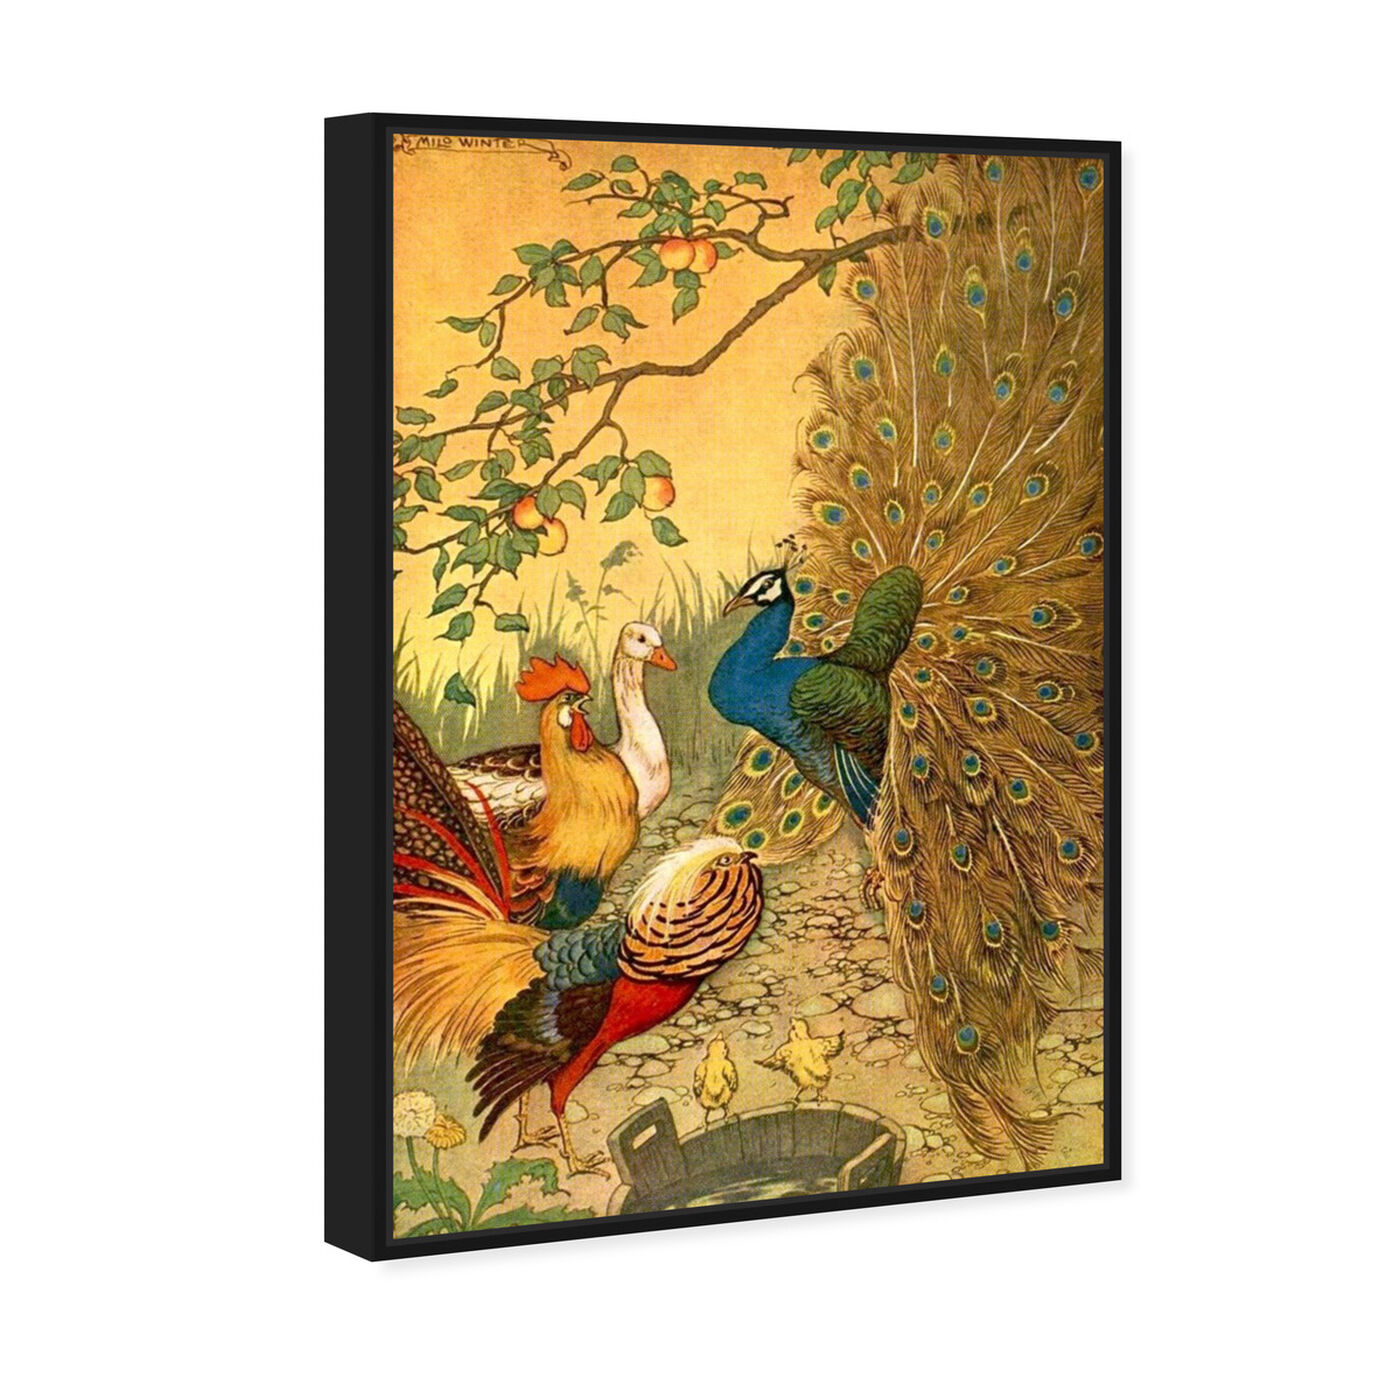 Angled view of The Peacock featuring animals and birds art.